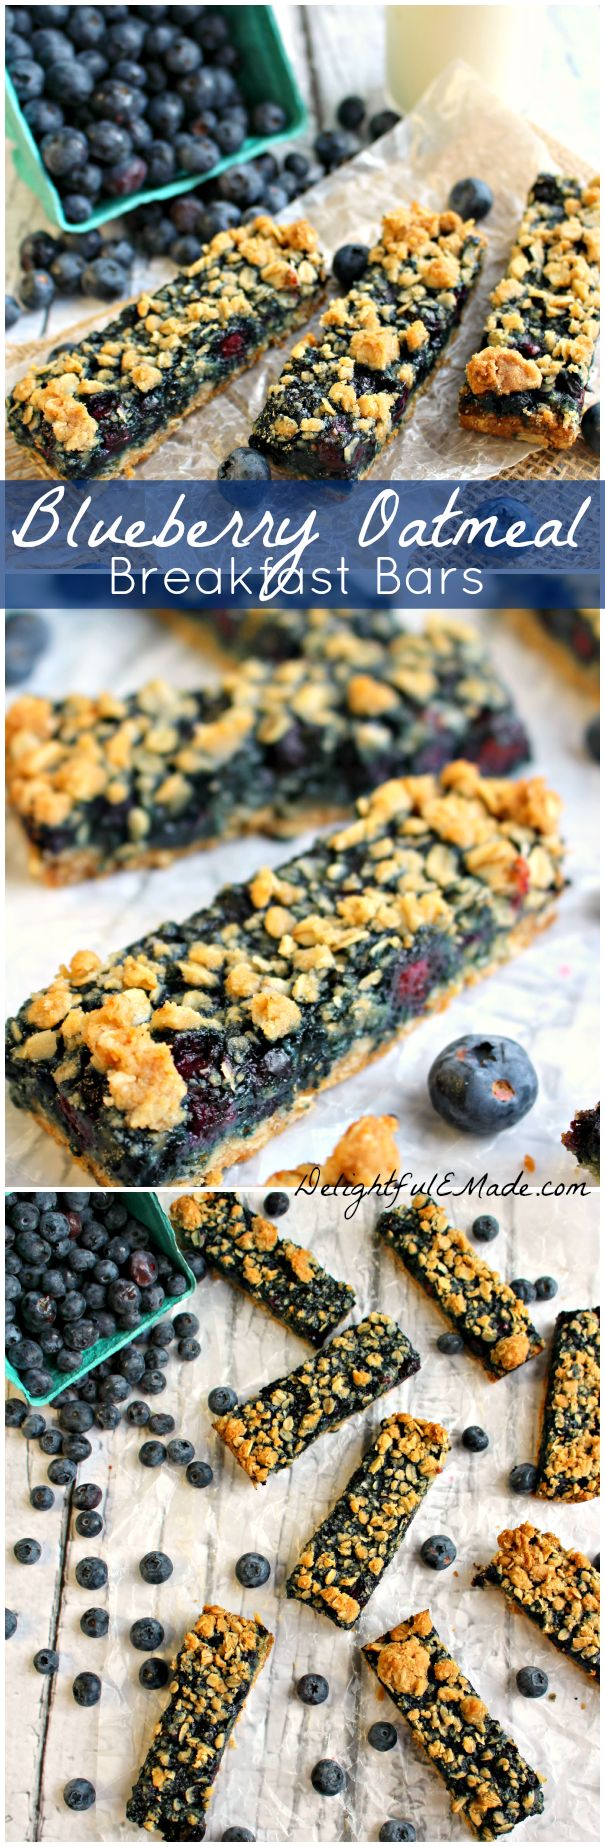 Blueberry Oatmeal Breakfast Bars by DelightfulEMade.com - maybe more of a dessert than breakfast